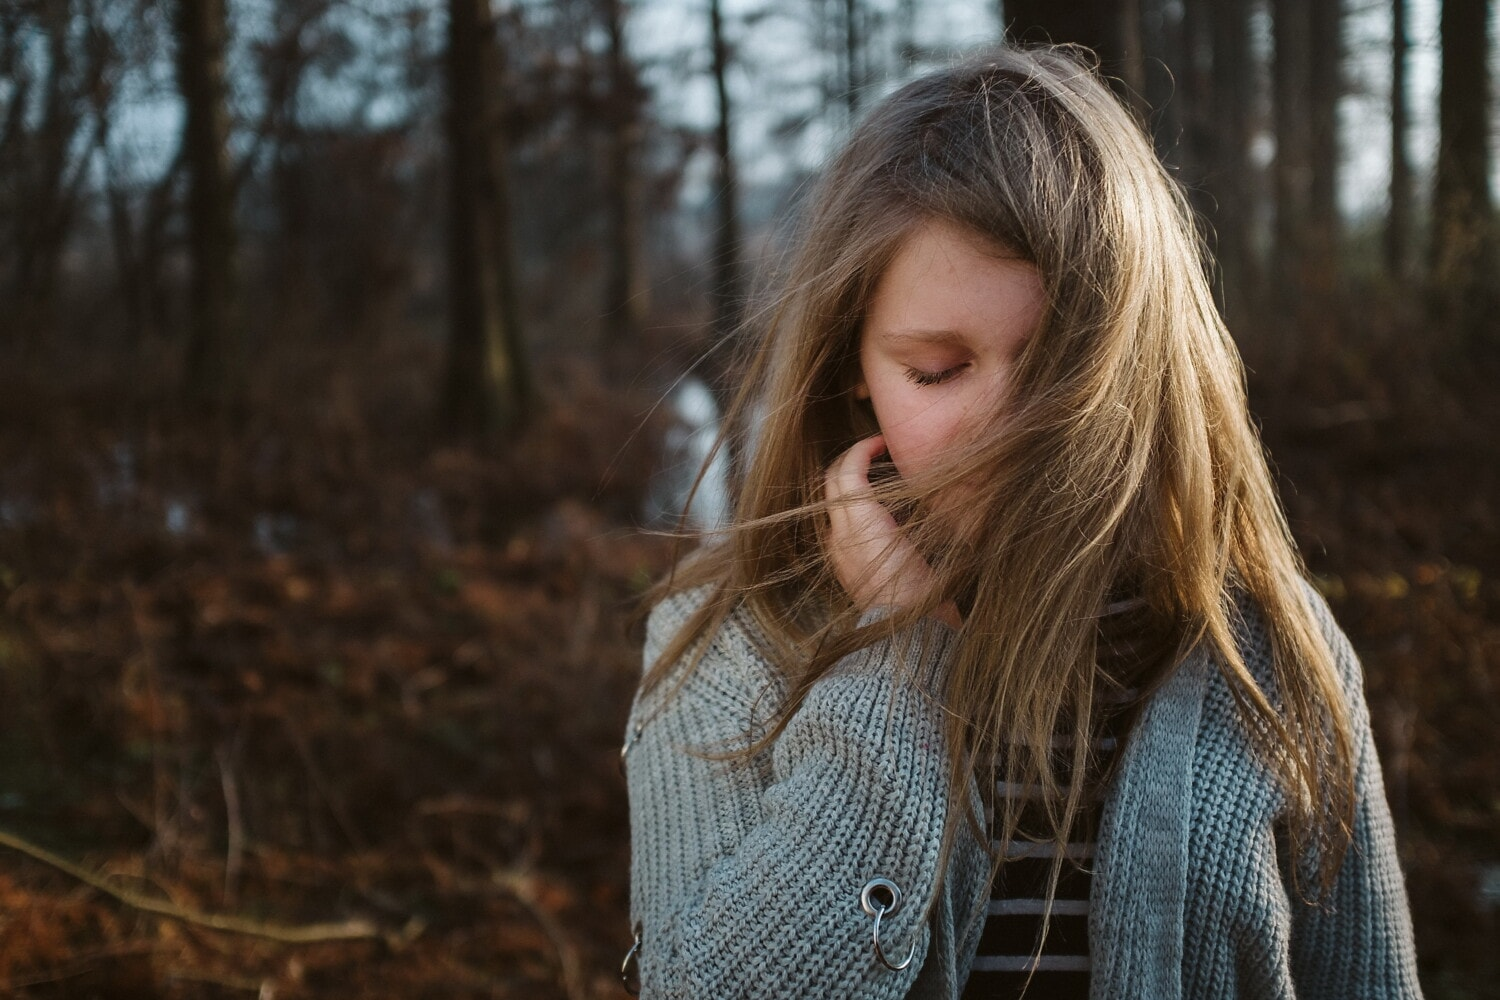 young, blonde, teenager, portrait, face, sweater, girl, nature, woman, hair